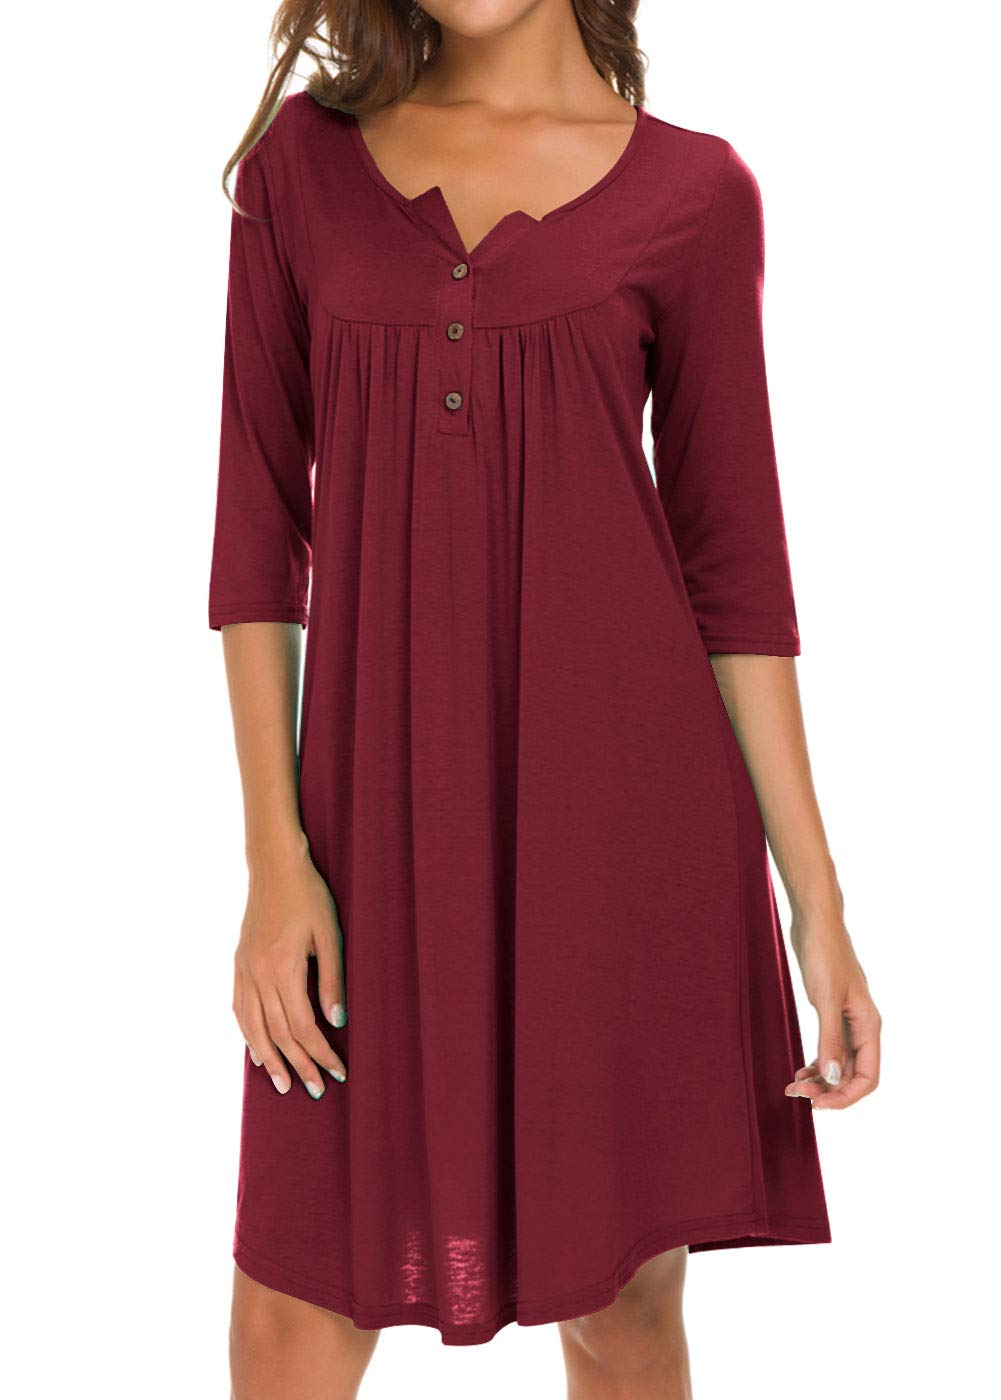 AMCLOS Womens V Neck Dress Casual Swing Simple Ruffle Button up Loose Dresses 3/4 Sleeve Long Sleeve (Large, Long-Wine Red)